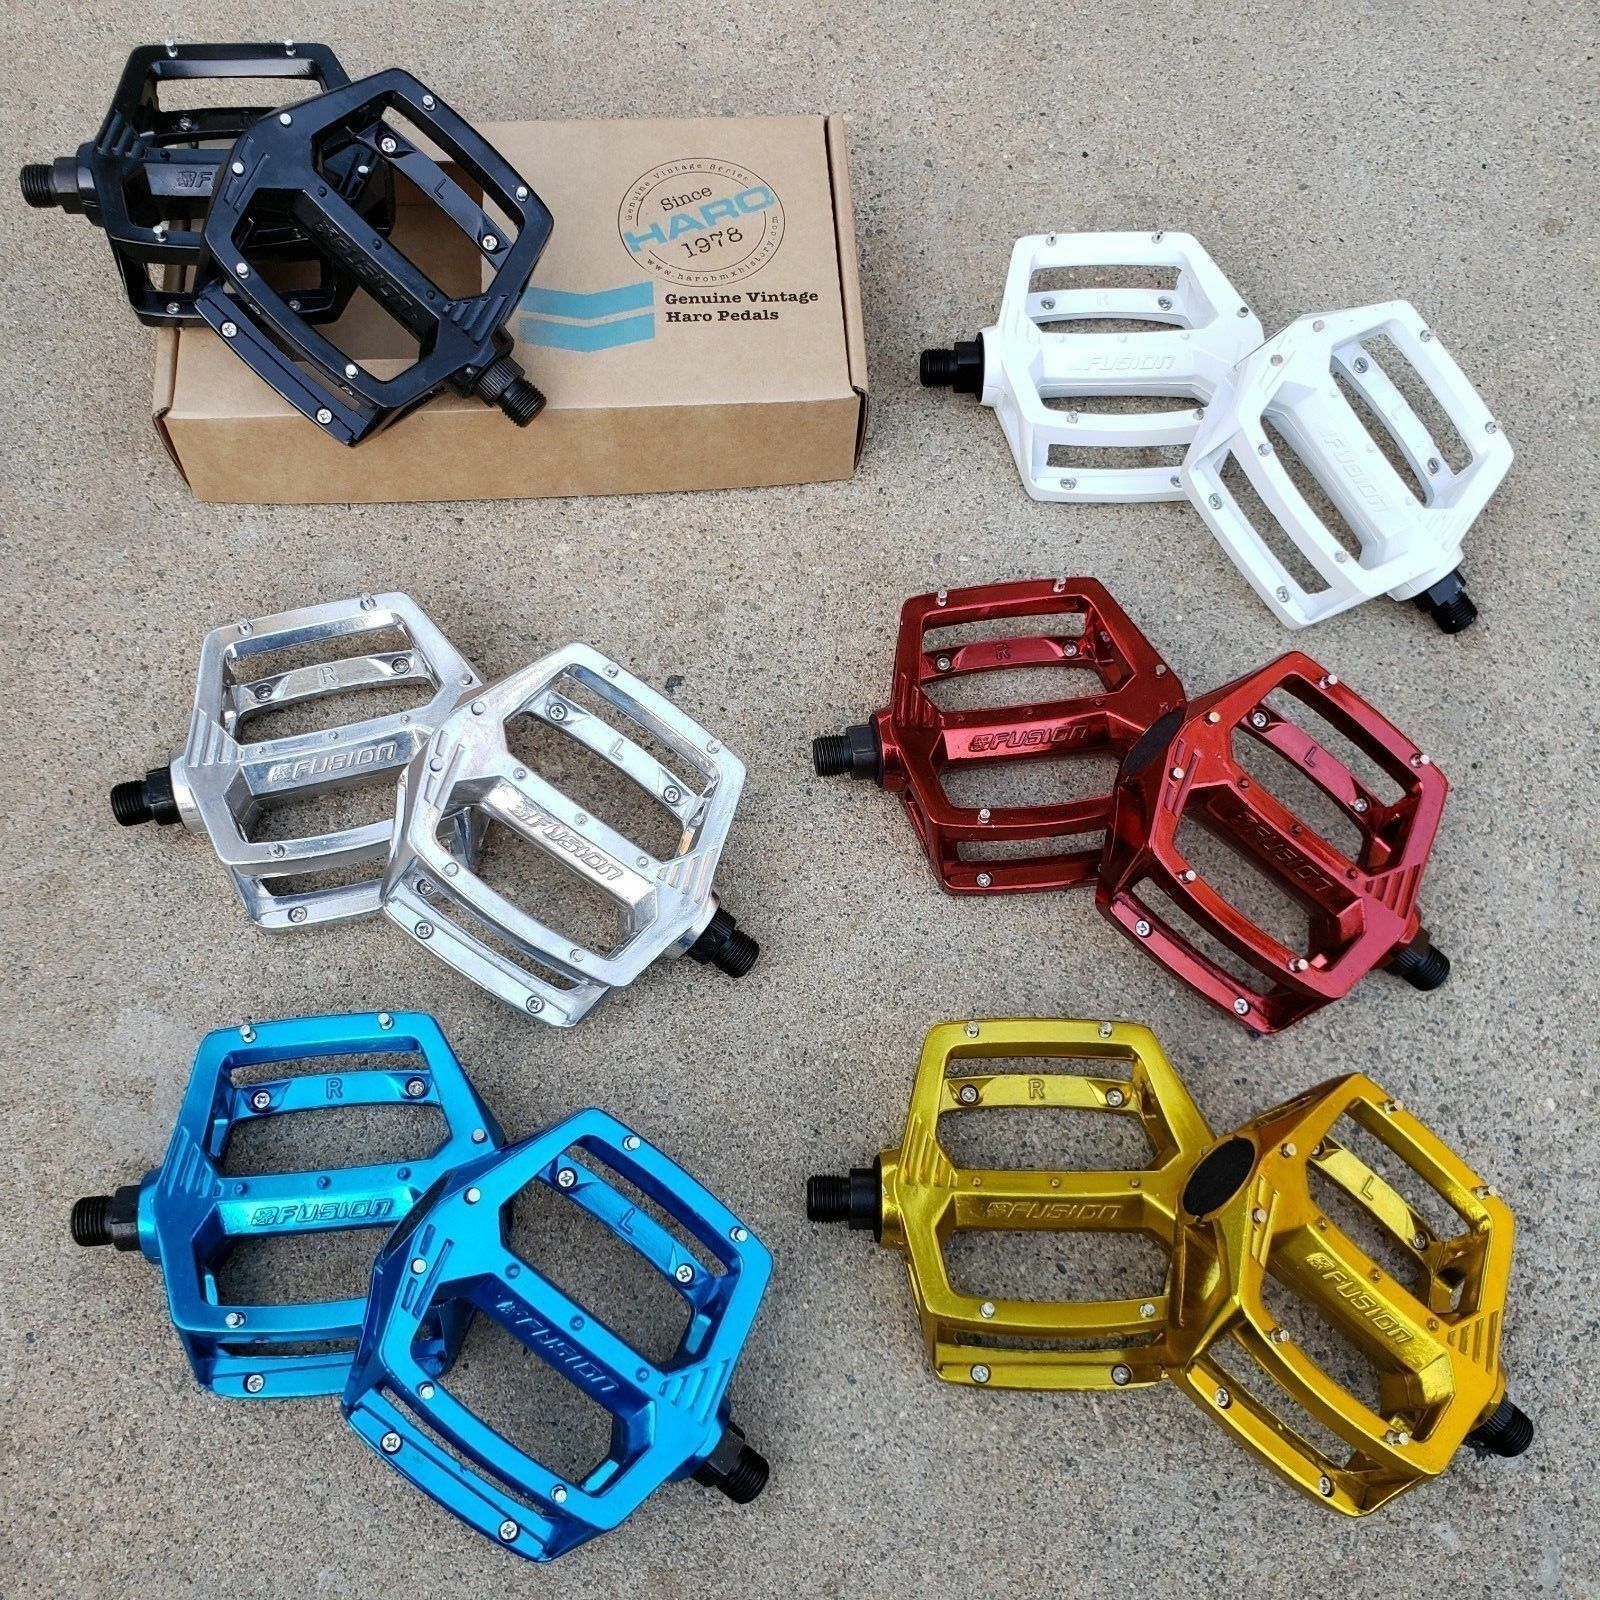 HARO FUSION PEDALS 9/16 FOR 3 PC CRANKS BMX BIKE BICYCLE PED